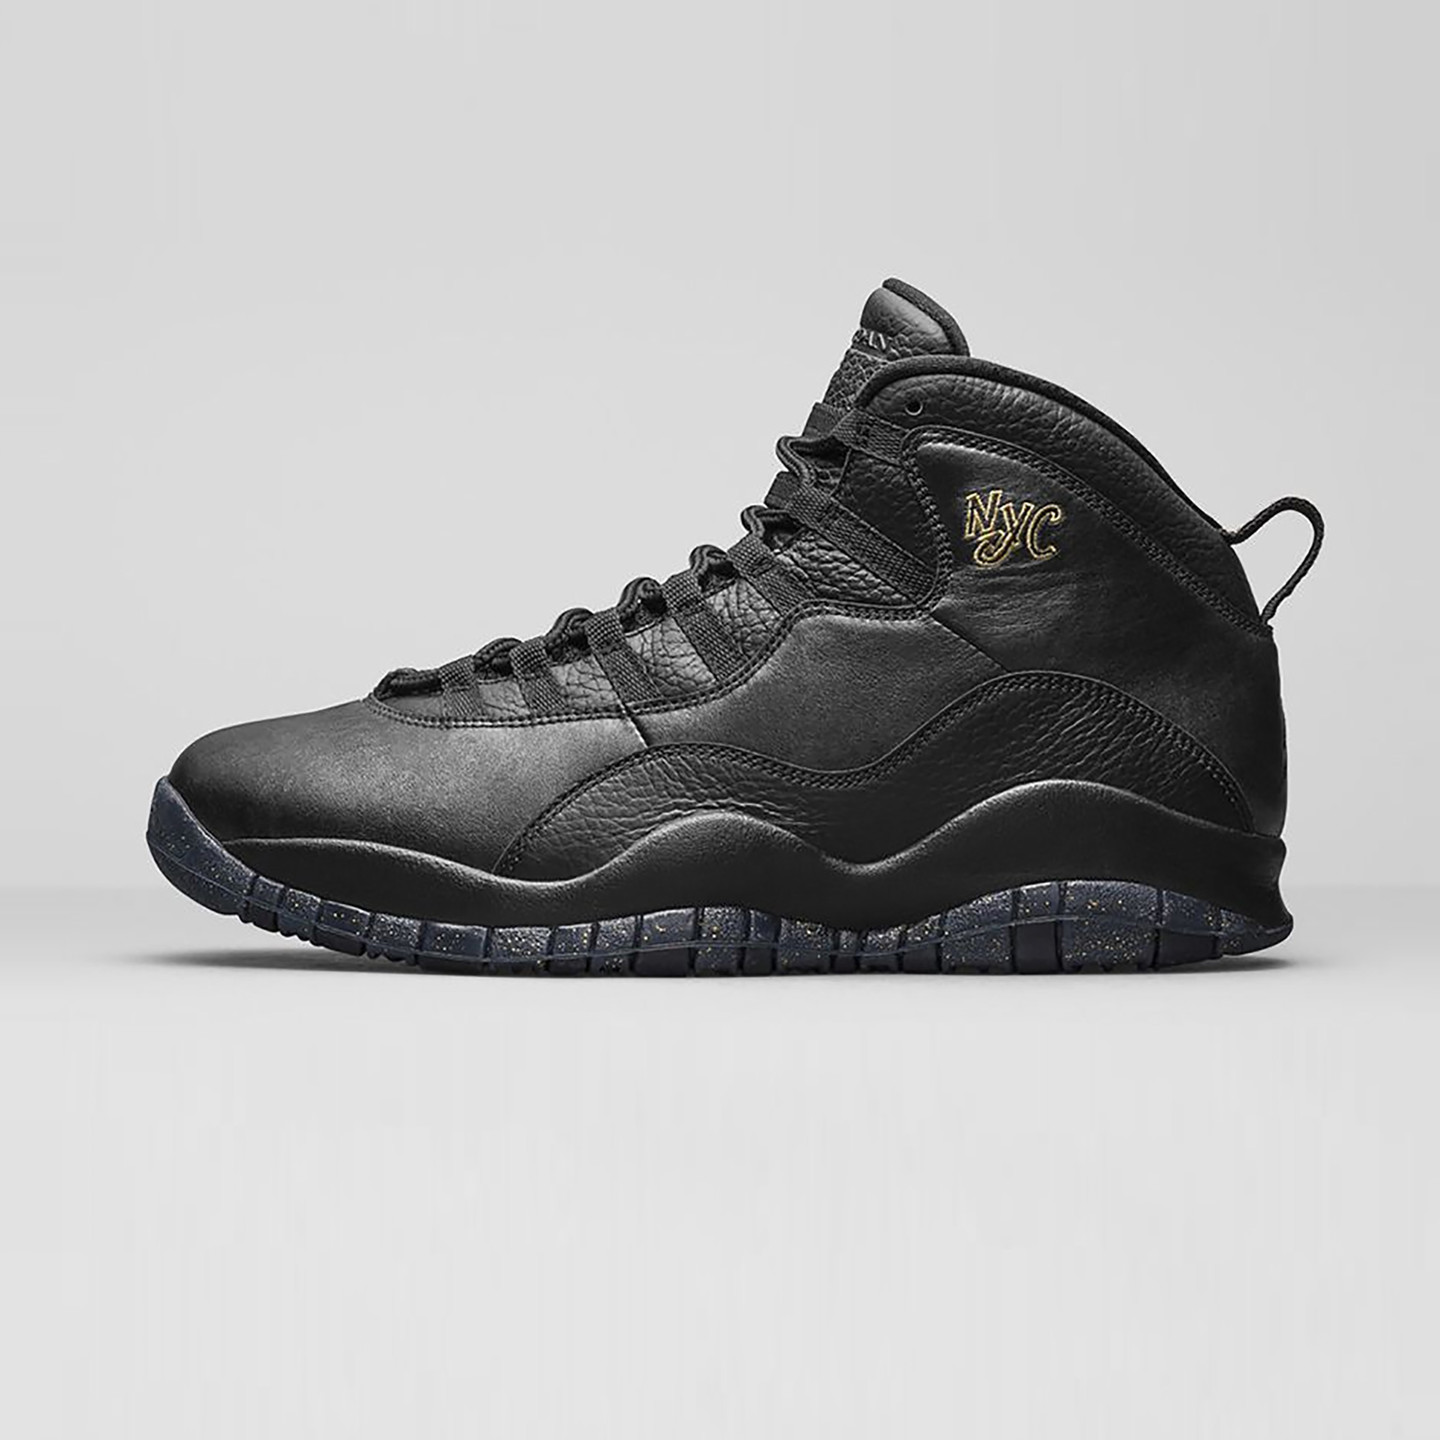 Jordan Air Jordan 10 Retro 'NYC' Black / Metallic Gold 310805-012-44.5